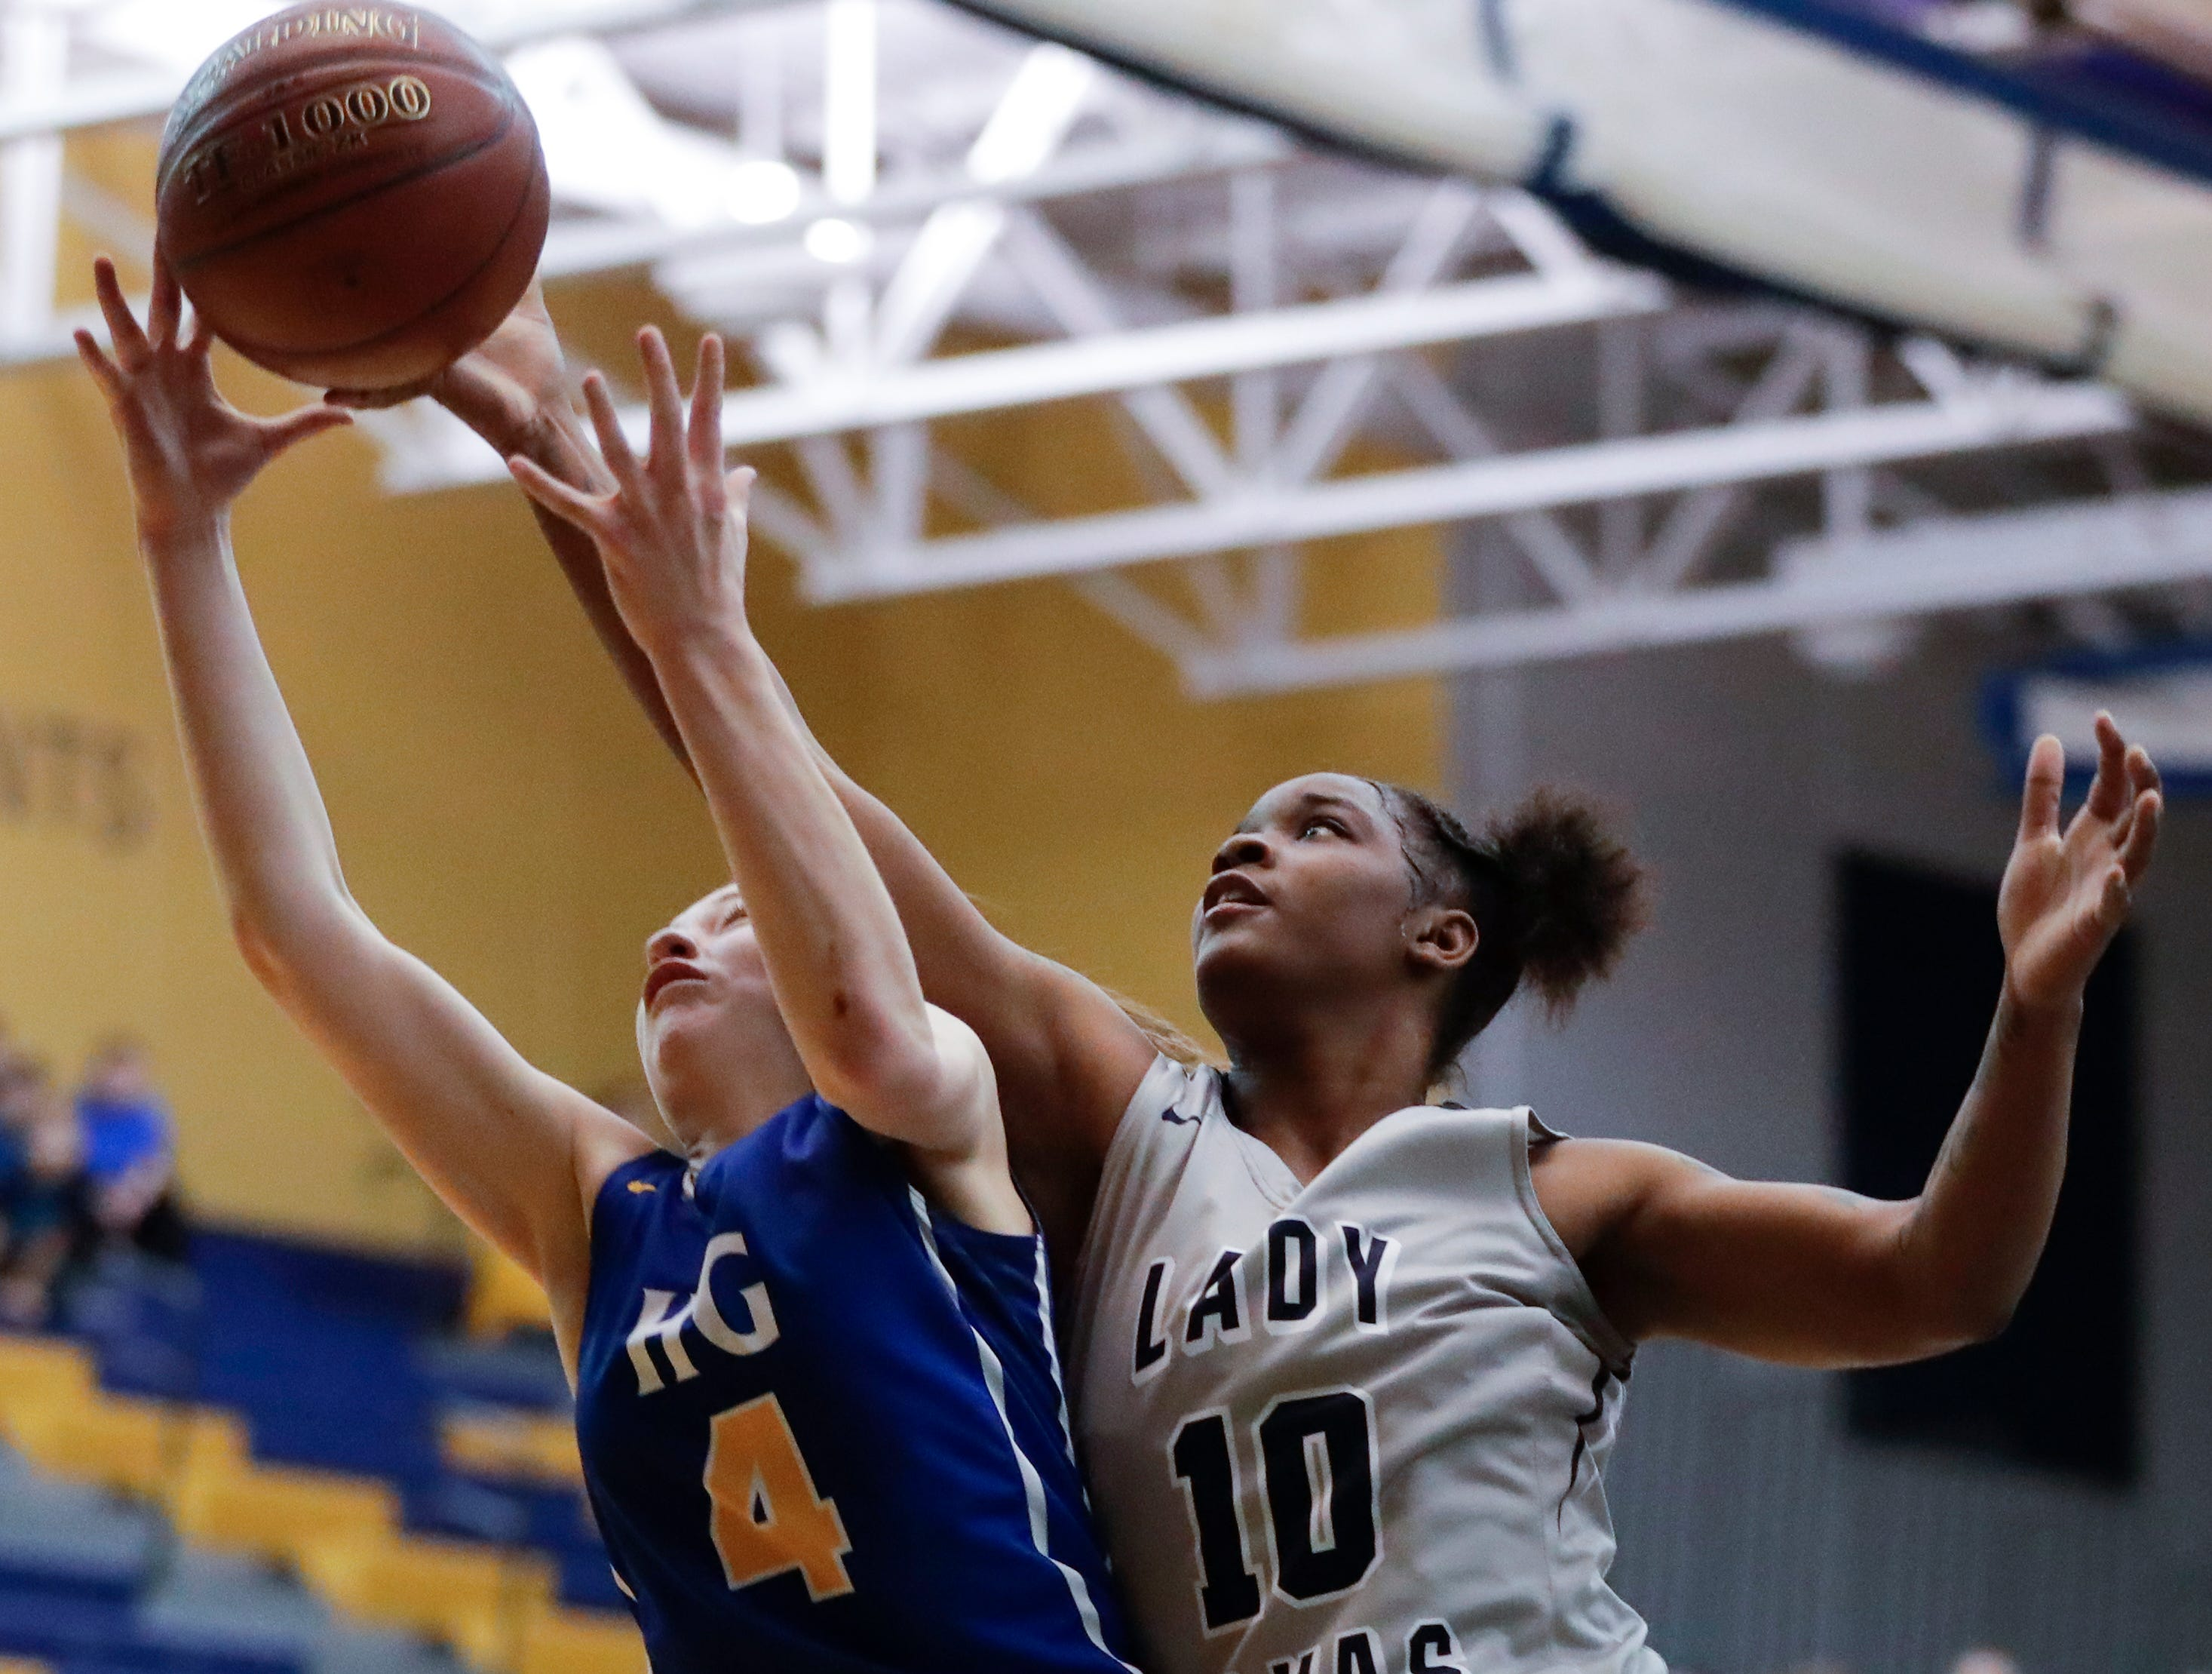 Howards Grove's Mackenzie Holzwart (4) battles Milwaukee Academy of Science's Shemera Williams (10) for a rebound during a WIAA Division 4 sectional championship game at Sheboygan North High School Saturday, March 2, 2019, in Sheboygan, Wis. Joshua Clark/USA TODAY NETWORK-Wisconsin